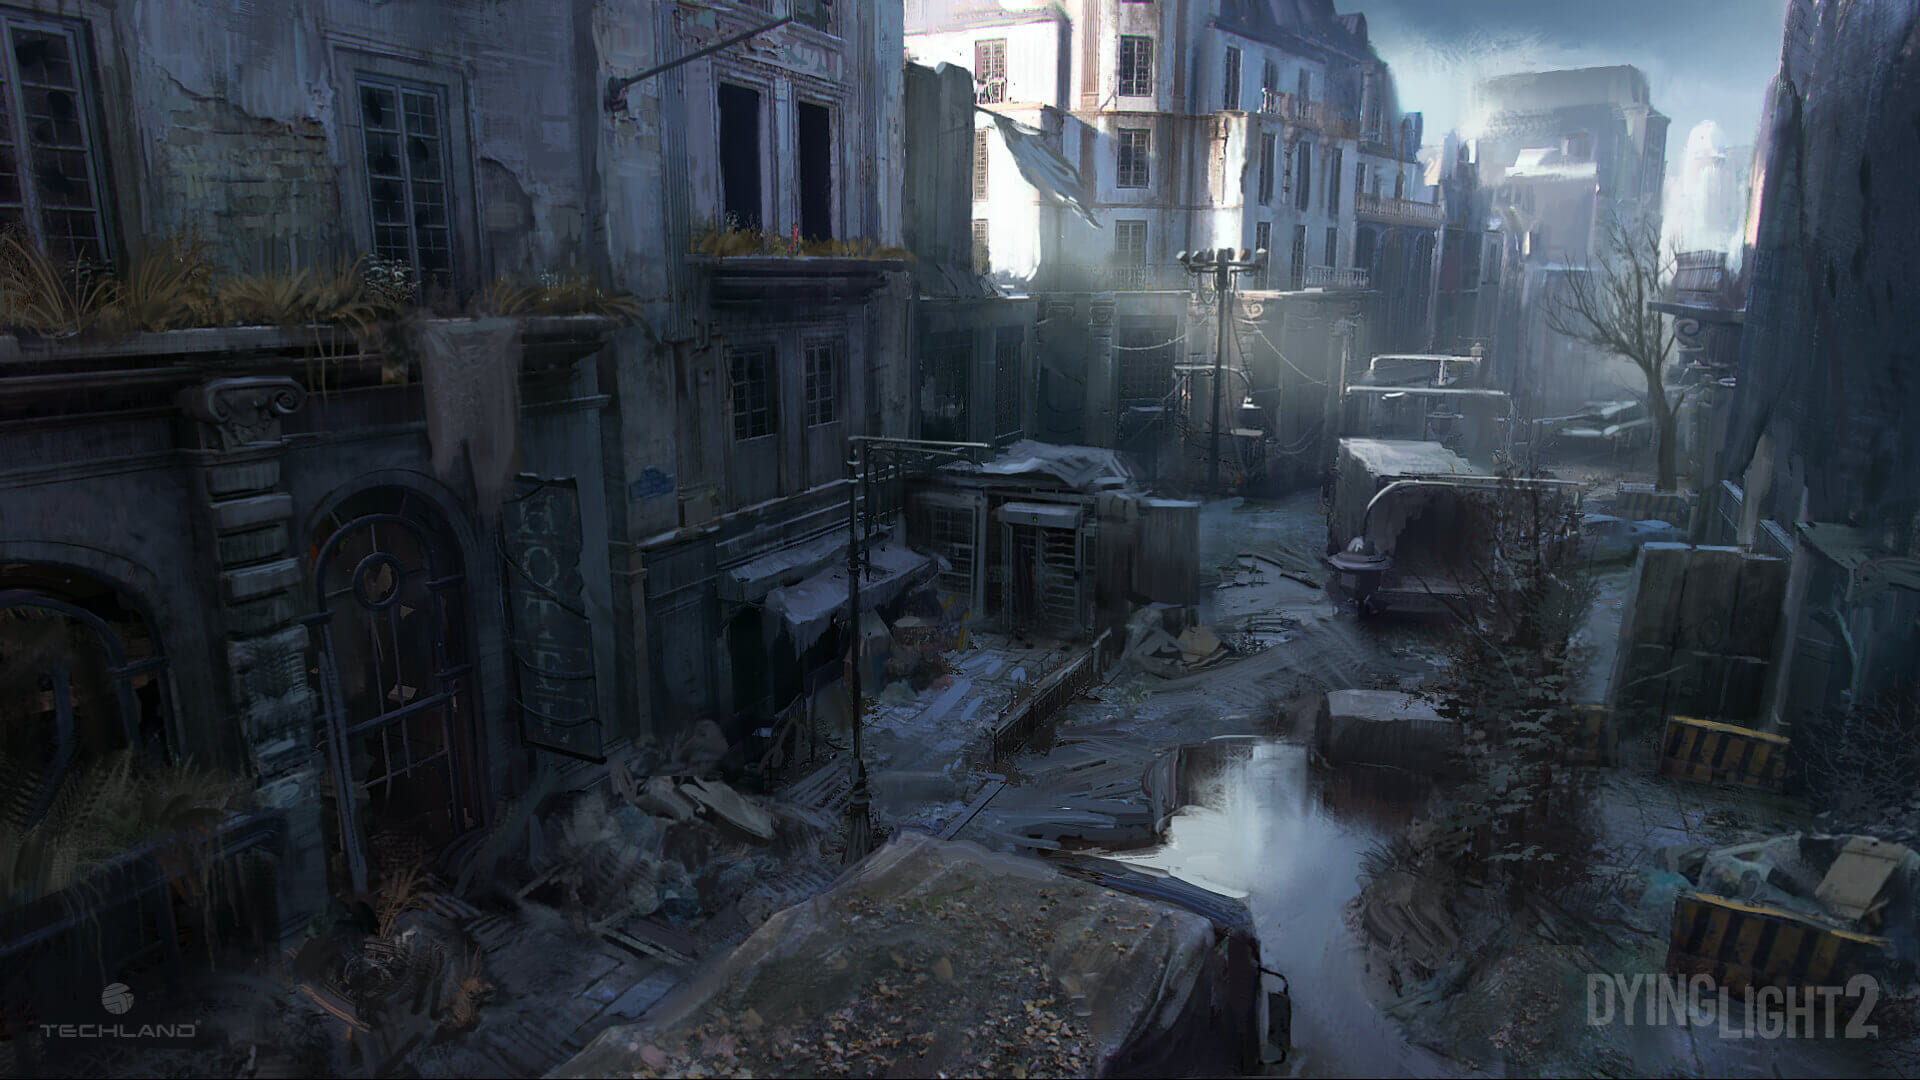 Sounds of the Dying City Dying Light 2 Street concept art